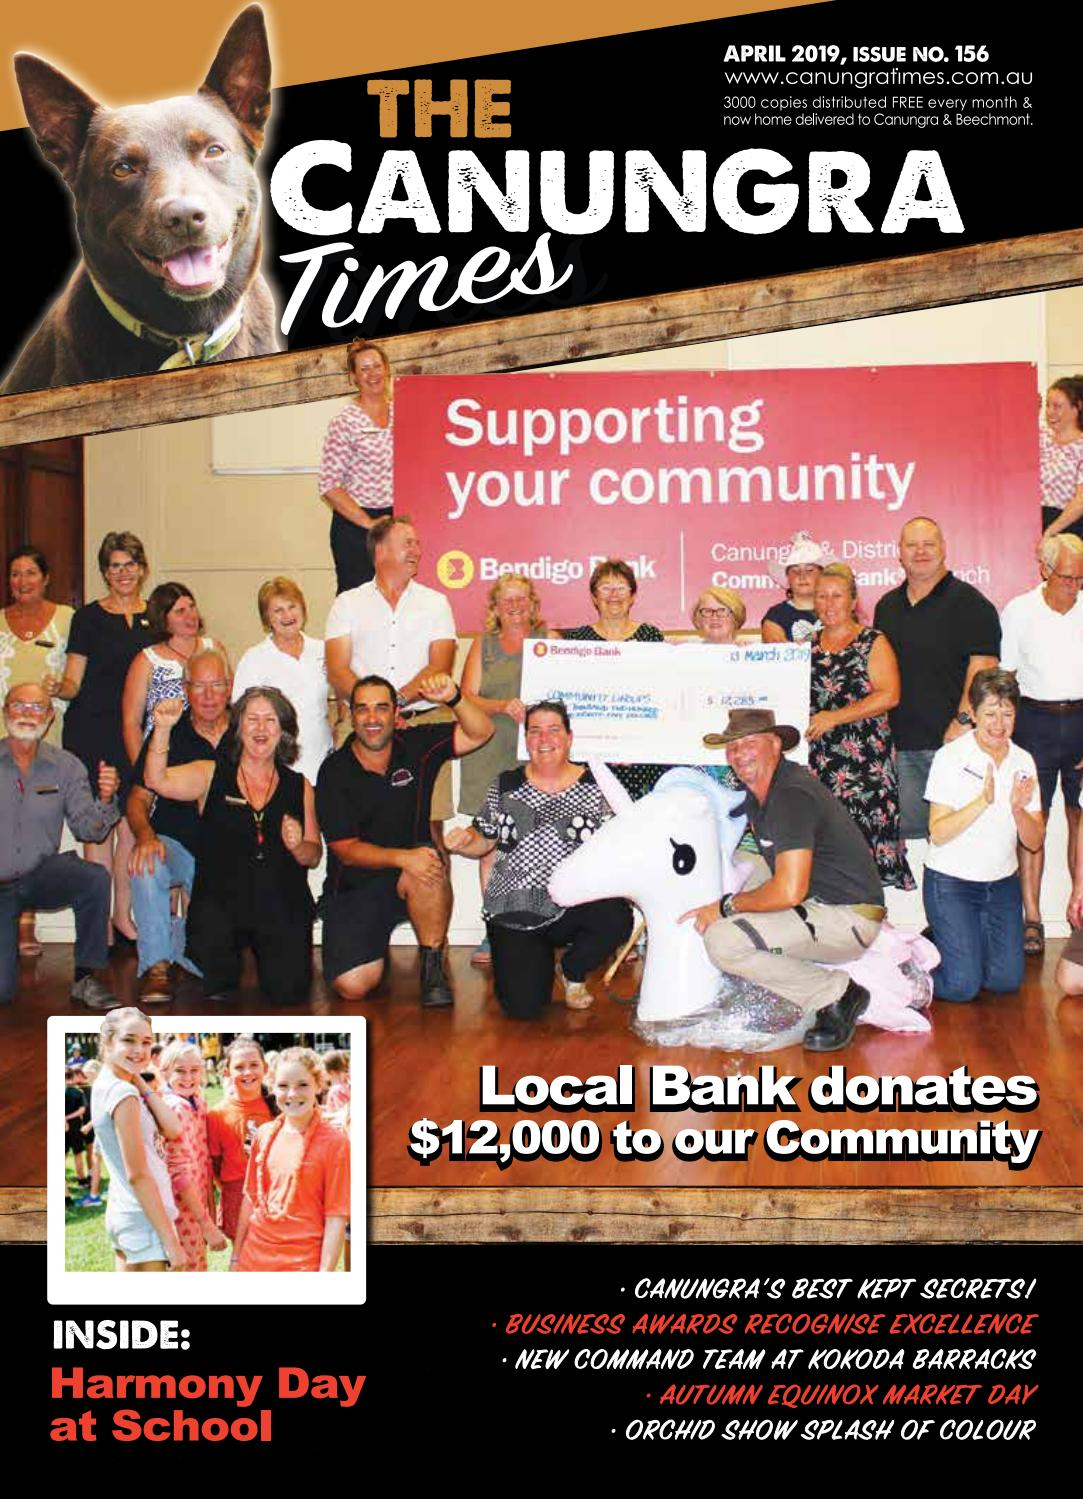 Canungra Times April 2019 edition by The Canungra Times - issuu